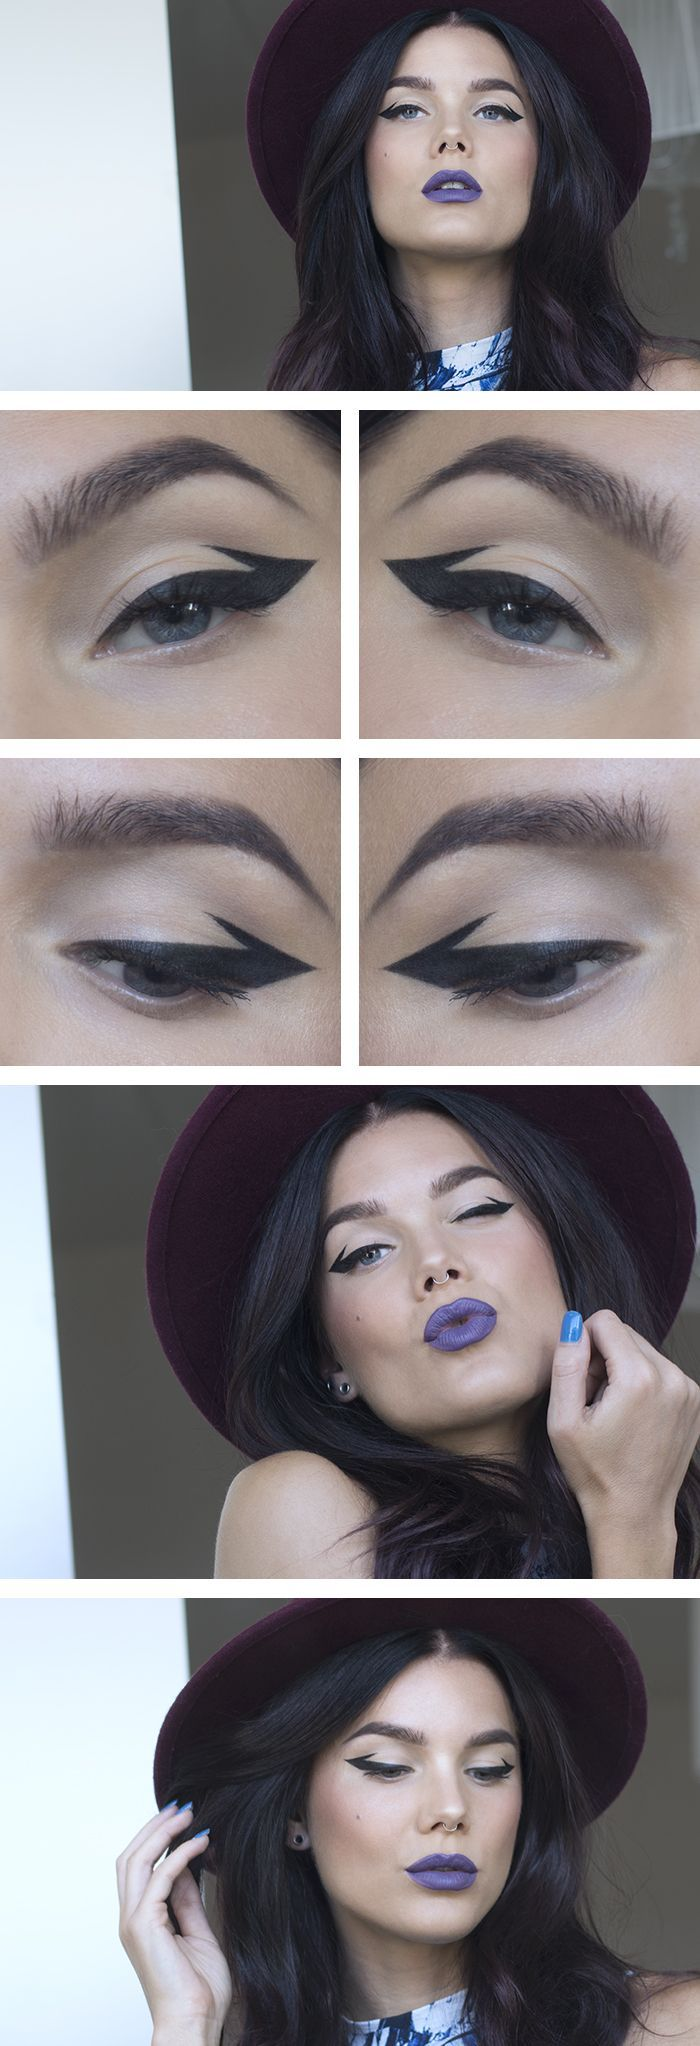 Double flick eyeliner and statement purple lips bang on trend and quick to achieve for #AW14...x #edgymakeuplooks